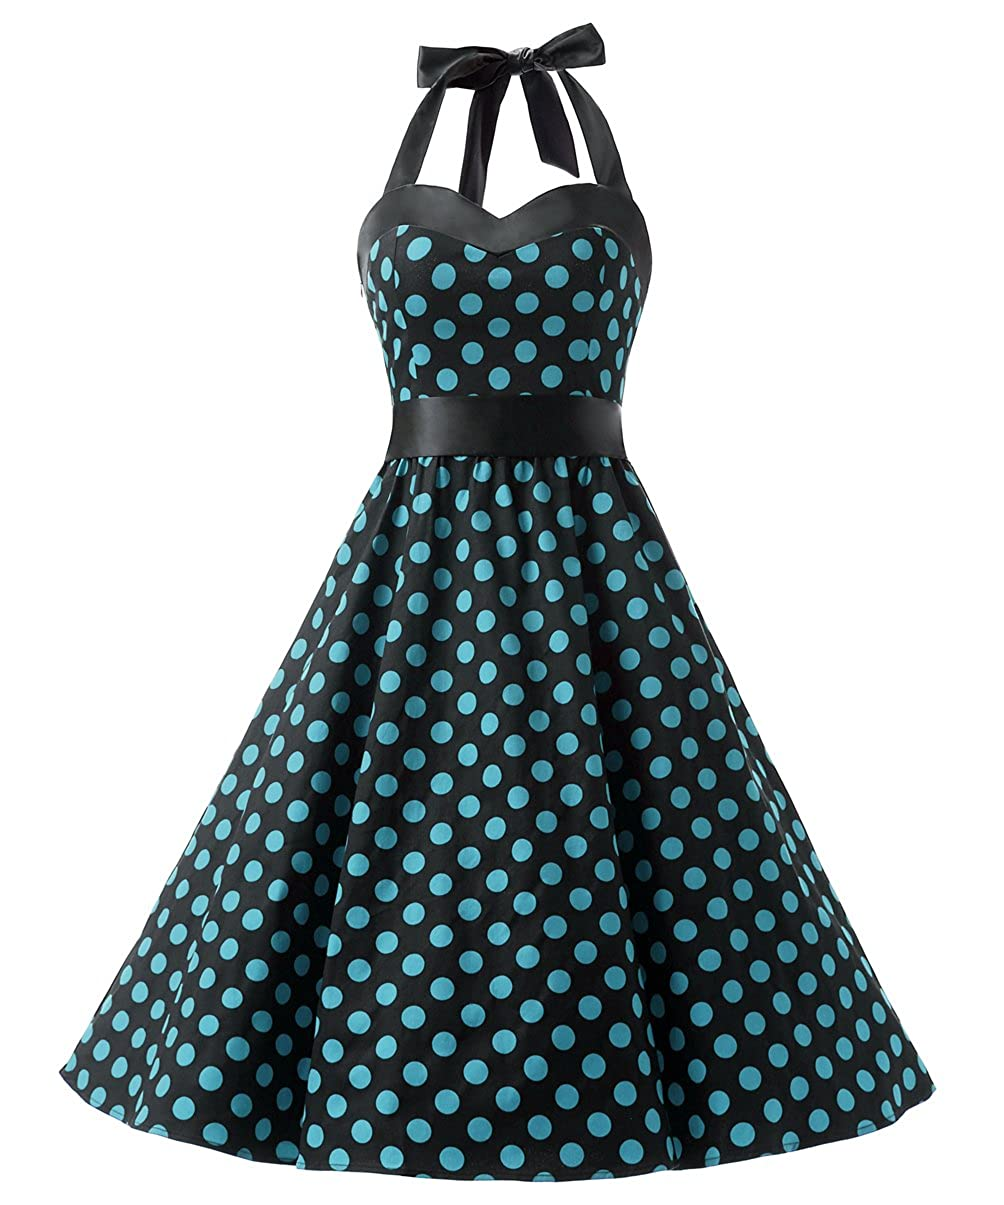 TALLA XL. Dresstells® Halter 50s Rockabilly Polka Dots Audrey Dress Retro Cocktail Dress Black Blue Dot XL